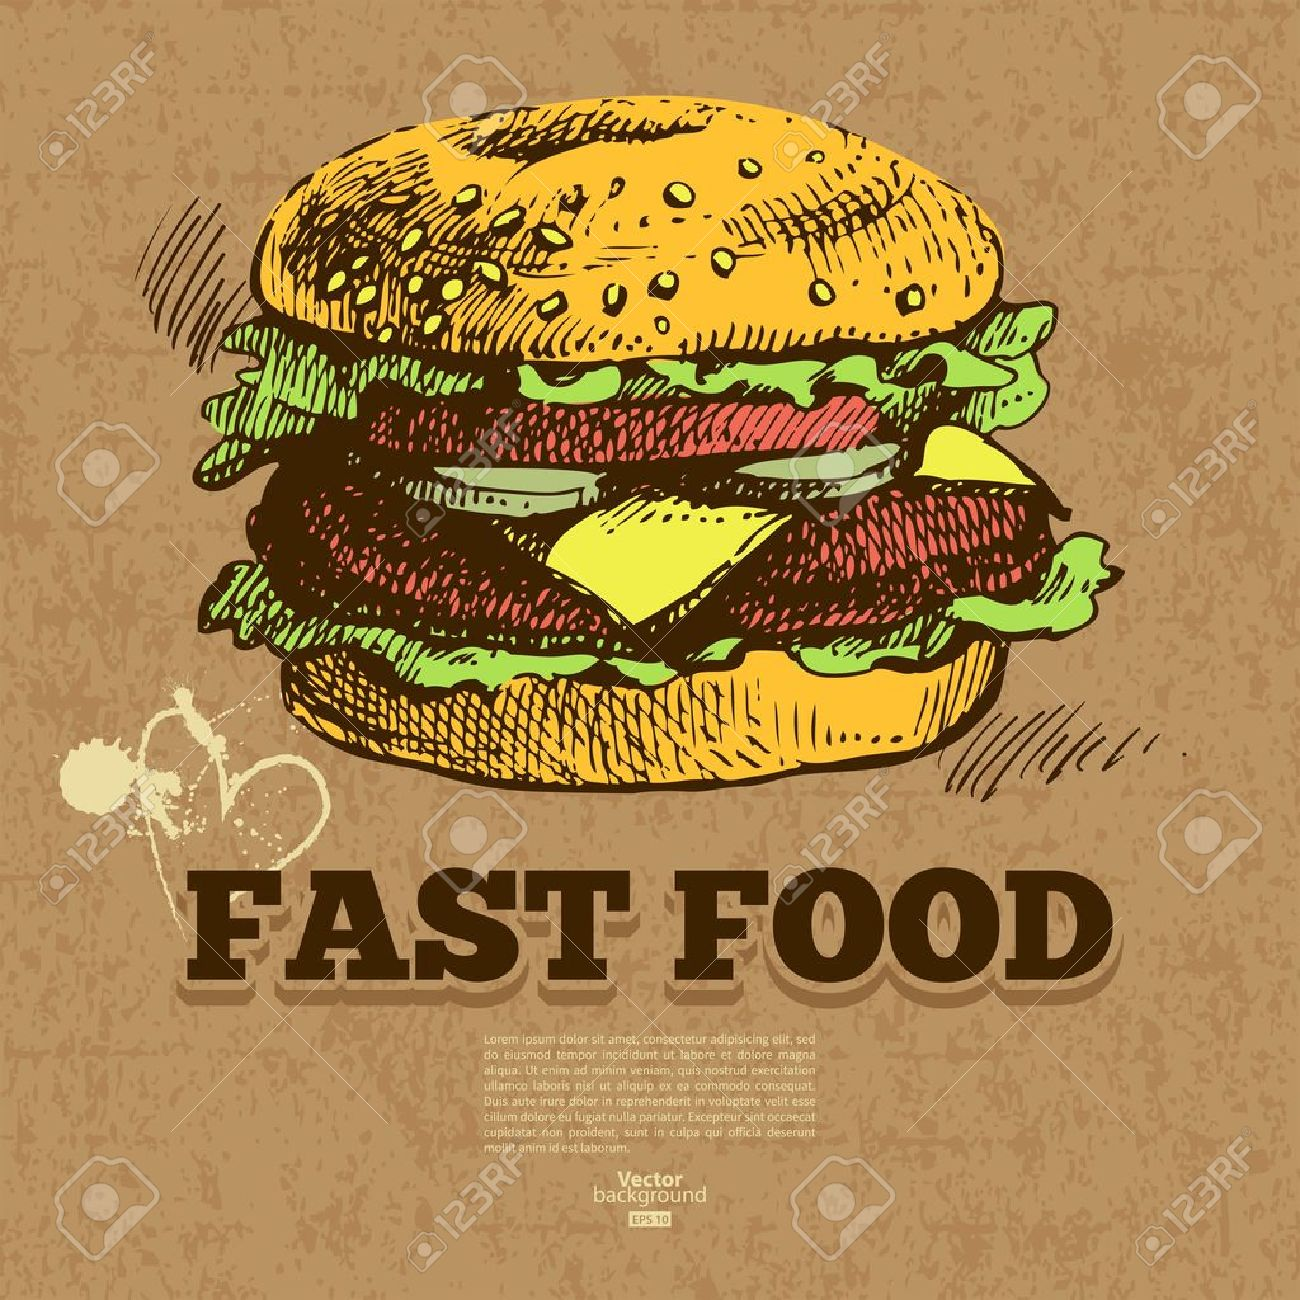 Vintage fast food background. Hand drawn illustration. Menu design Stock Vector - 20913356